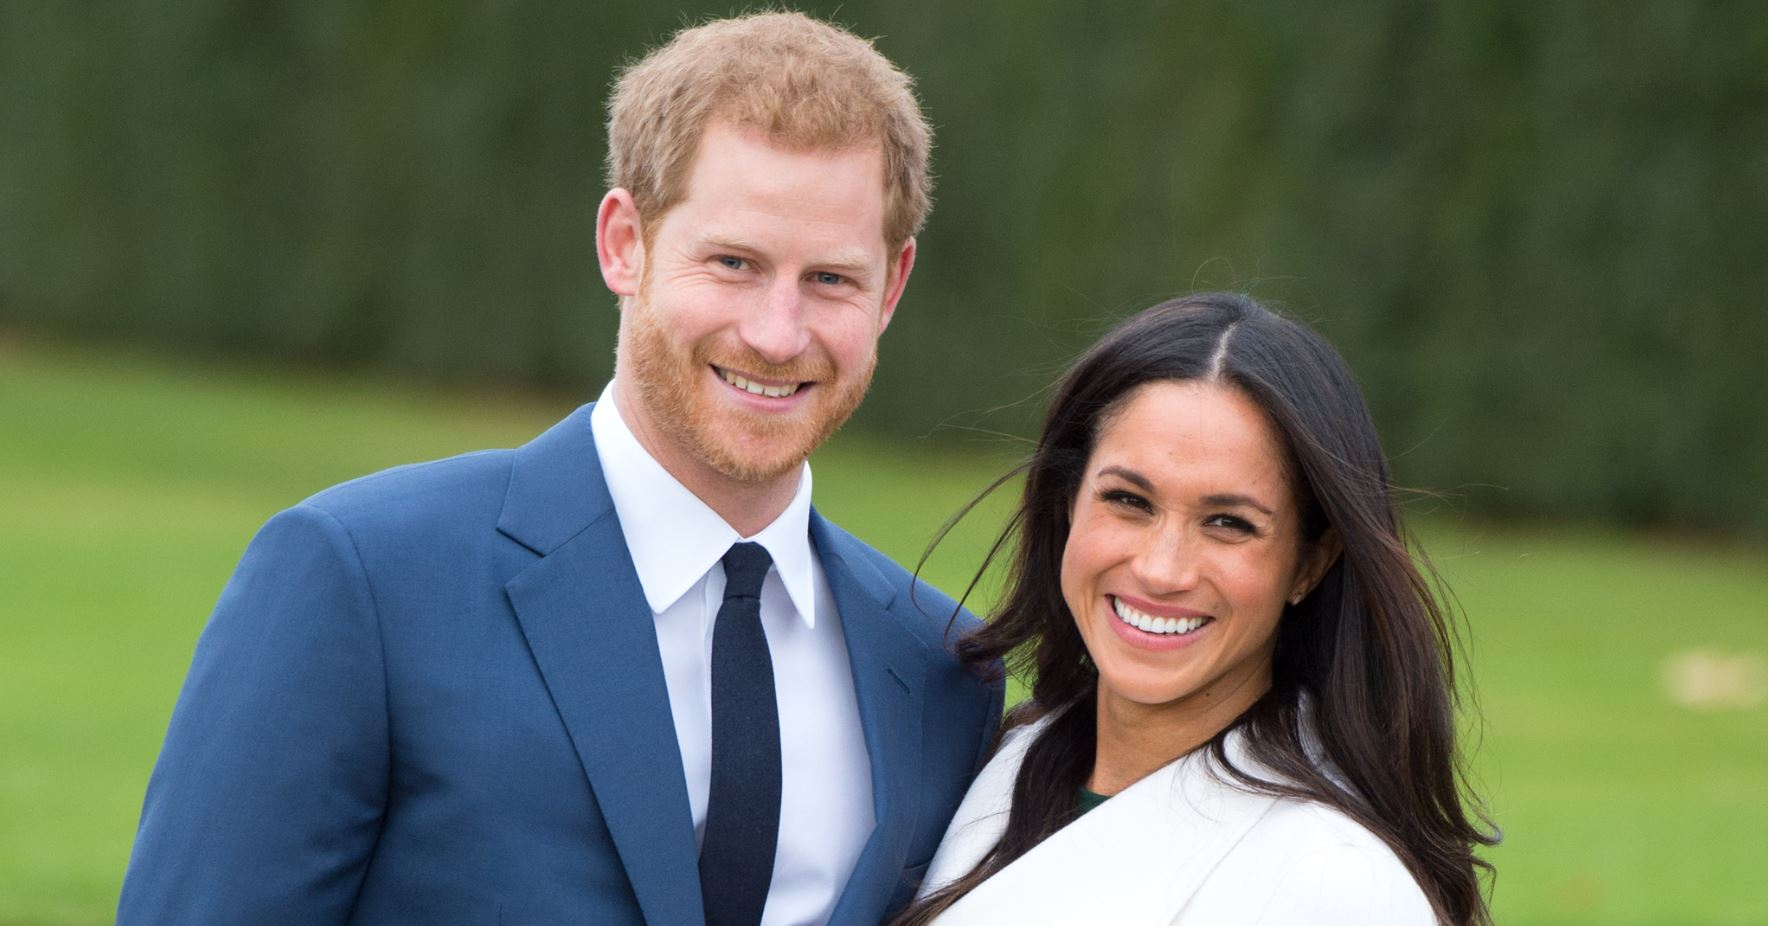 BridalPulse: Prince Harry and Meghan Markle's Engagement and Wedding Details Revealed | Photo: Splash News | Follow @bridalpulse for more wedding inspiration!